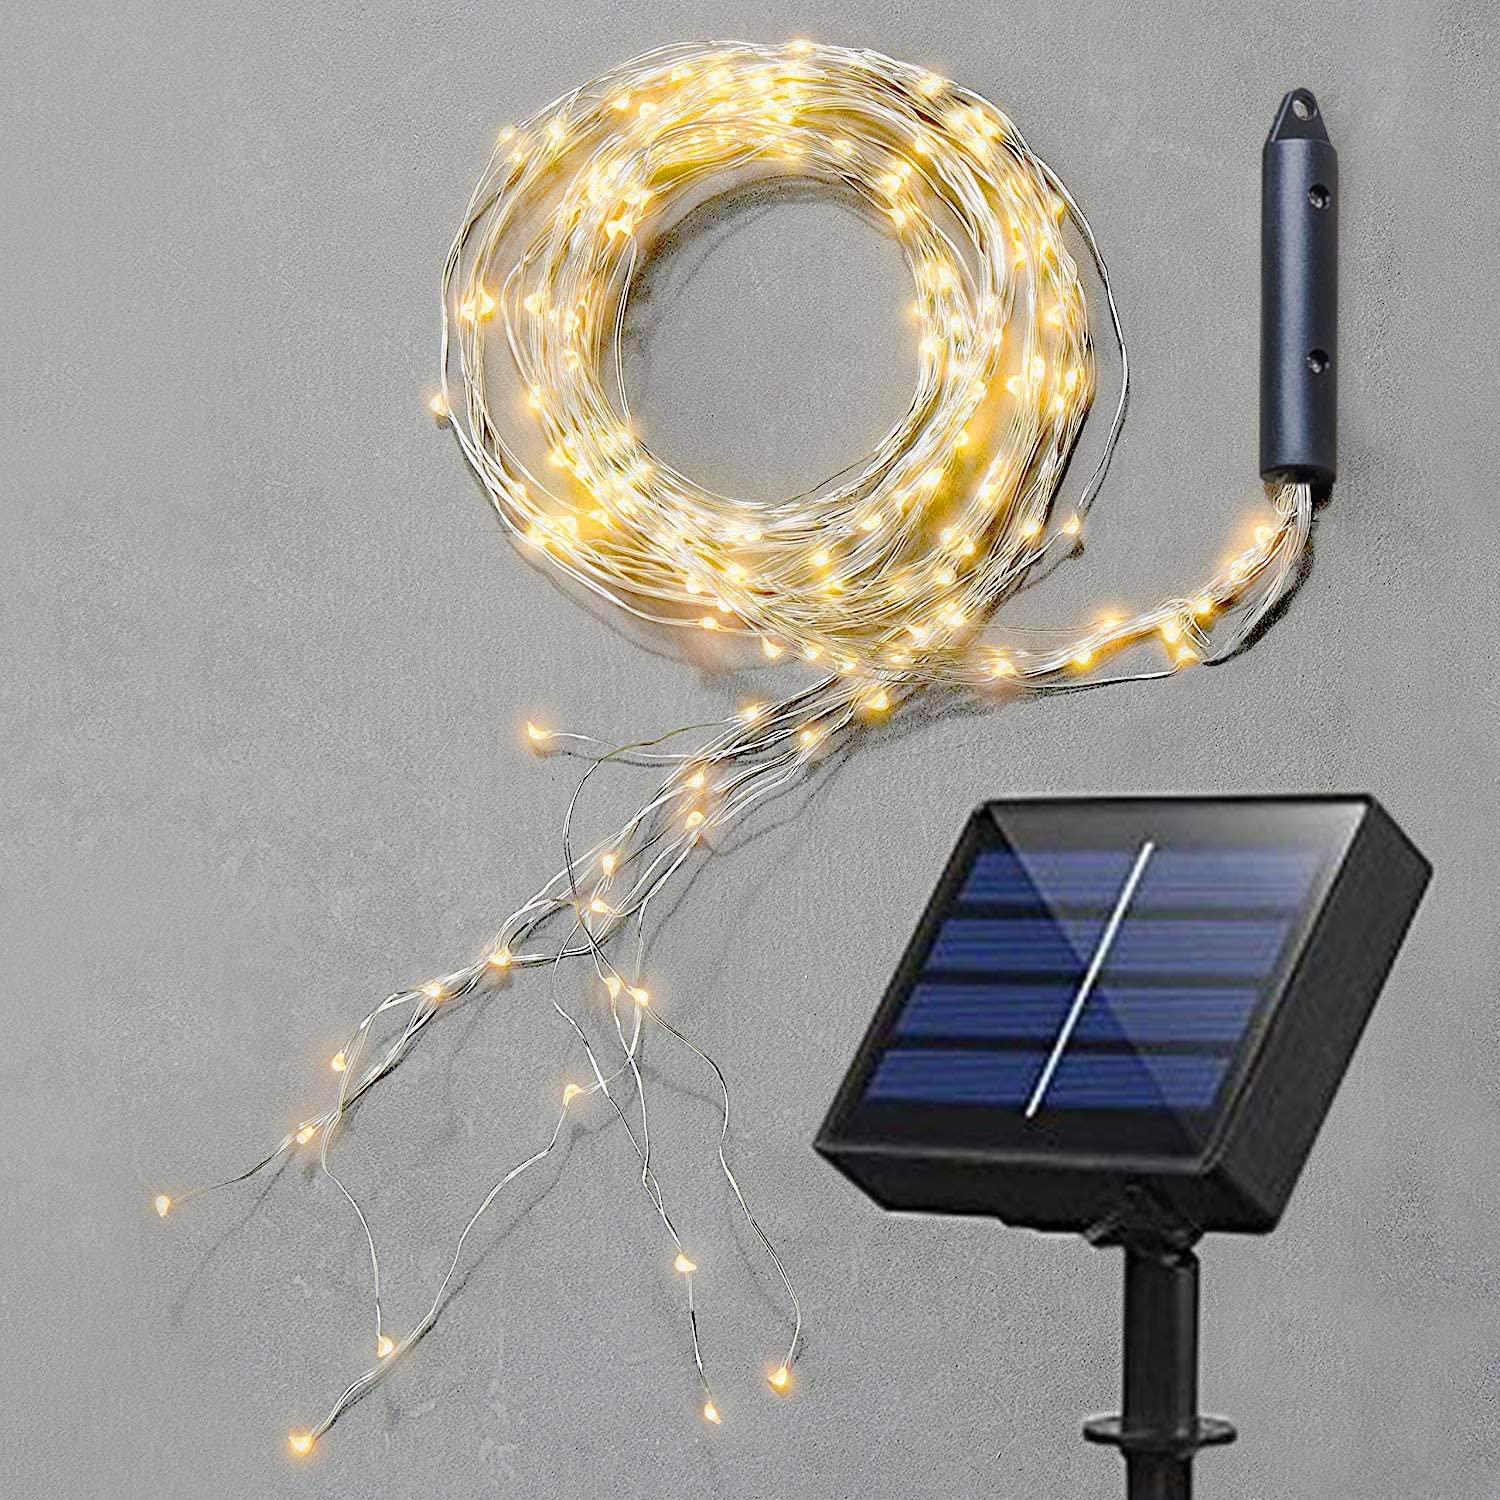 Soltuus Solar Fairy String Lights Outdoor, Multi Strand 20 LEDs Watering  Can Light, Waterproof Solar Powered Waterfall Lights, Warm White Firefly ...